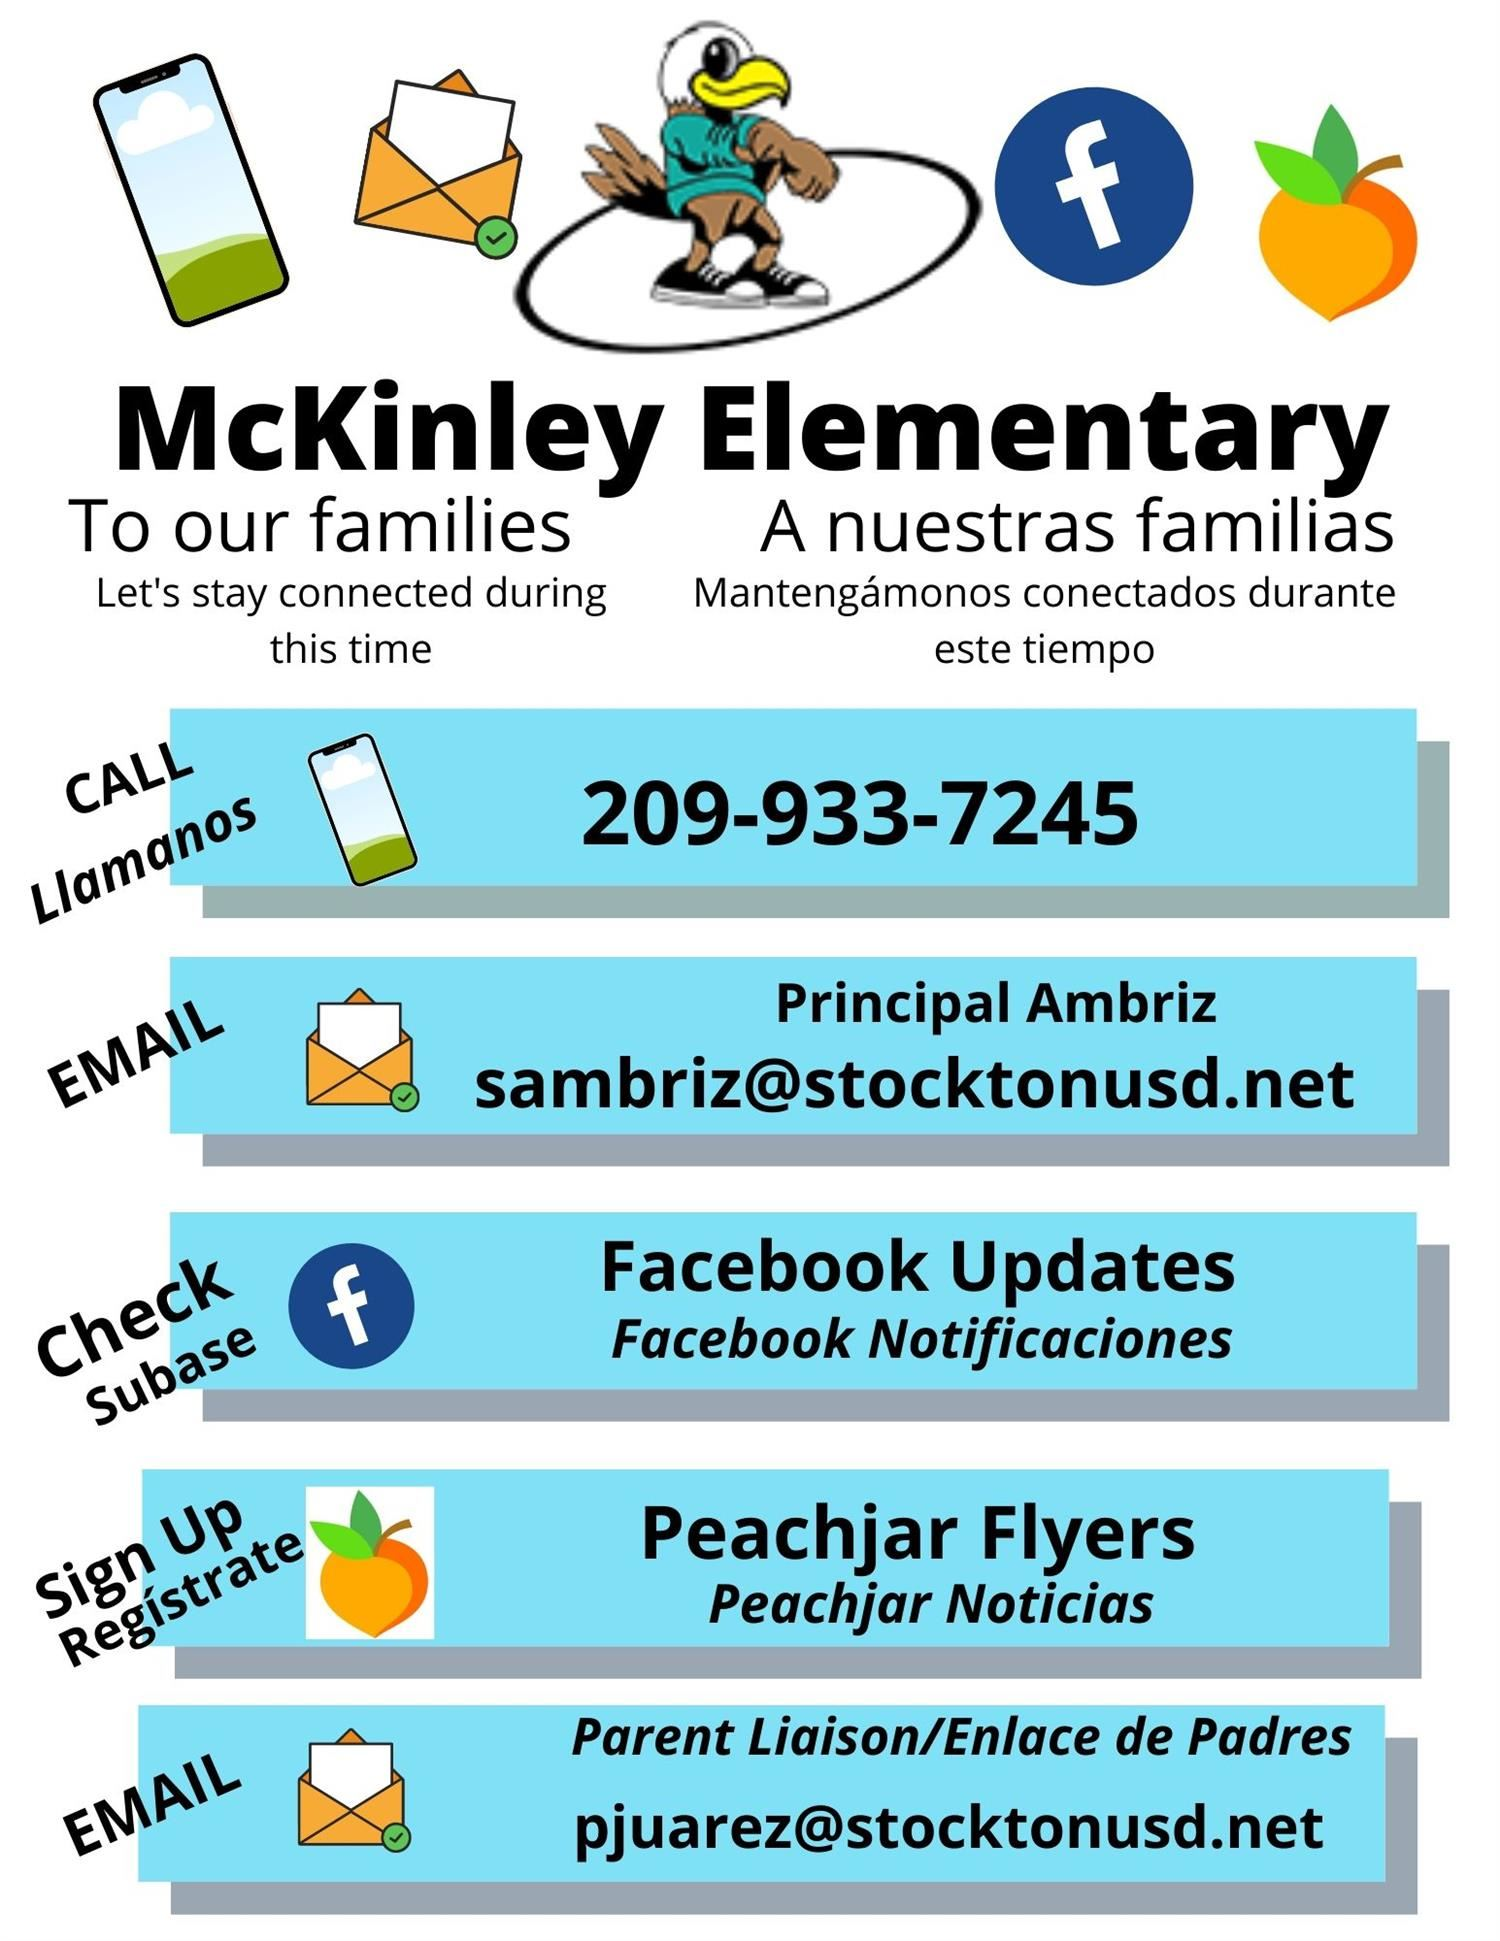 McKinley Flyer with various ways to contact the school